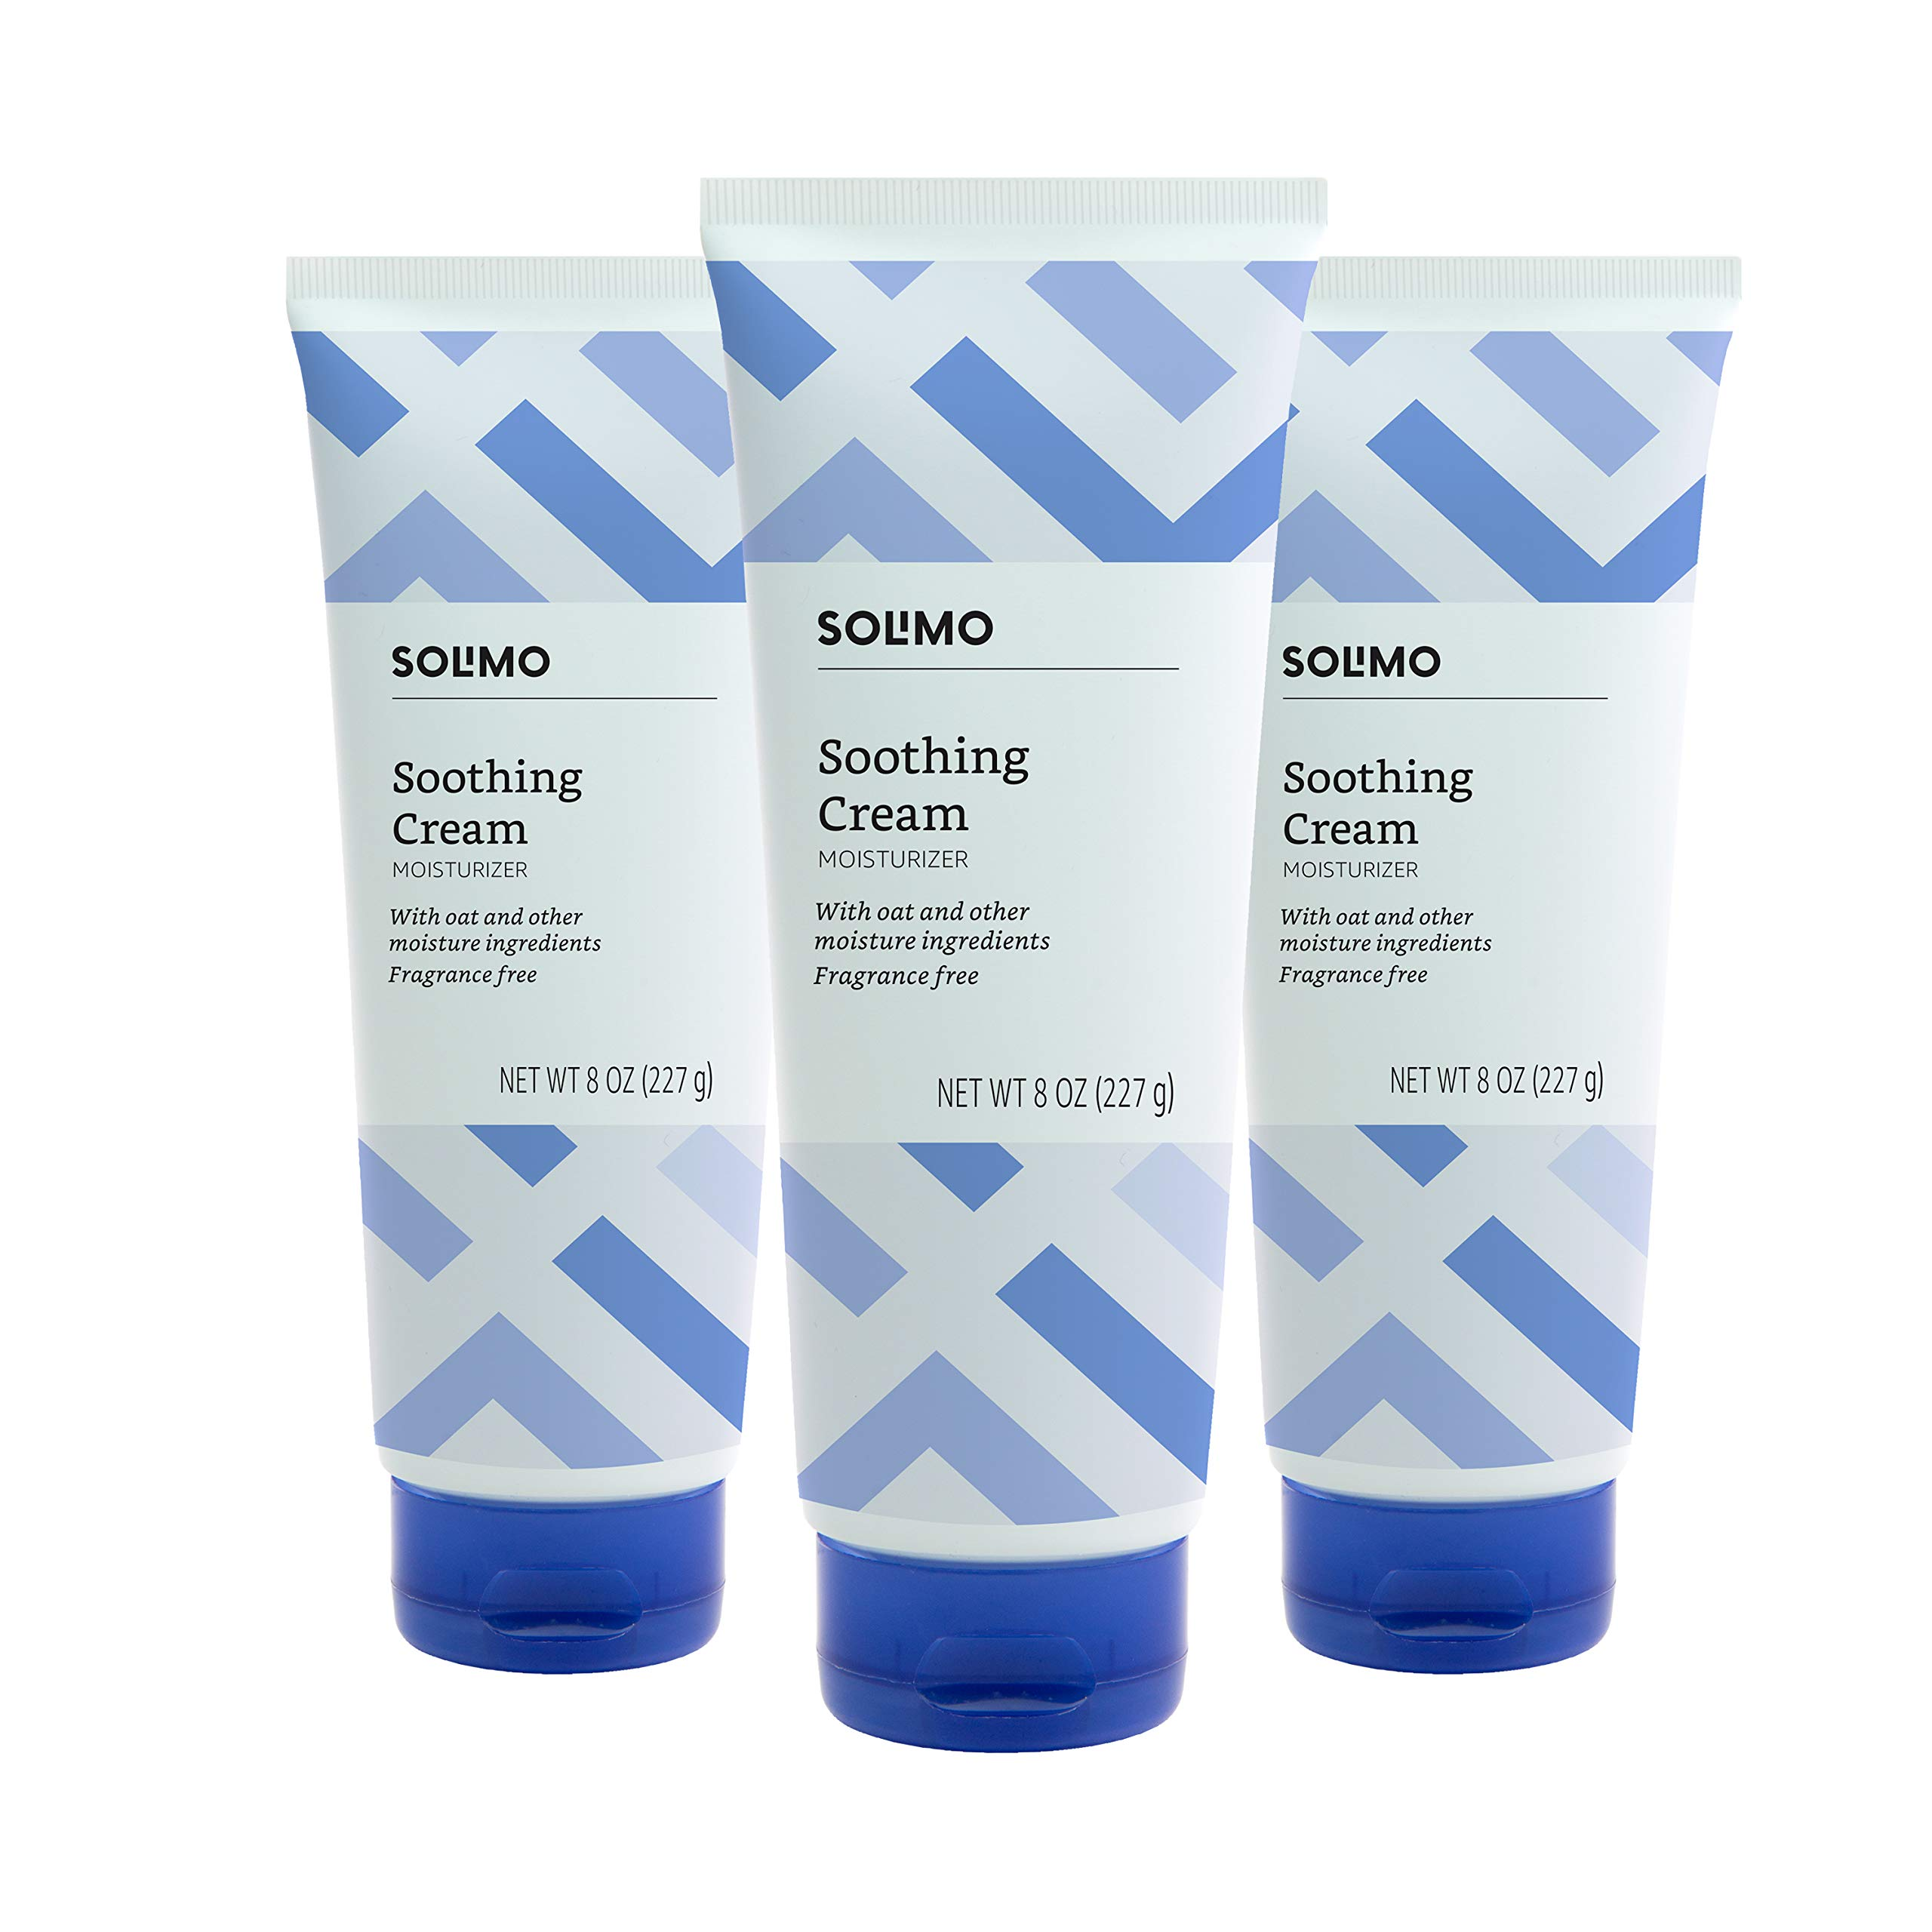 Amazon Brand - Solimo Soothing Cream Moisturizer with Oat, Fragrance Free, 8 Ounce (Pack of 3)